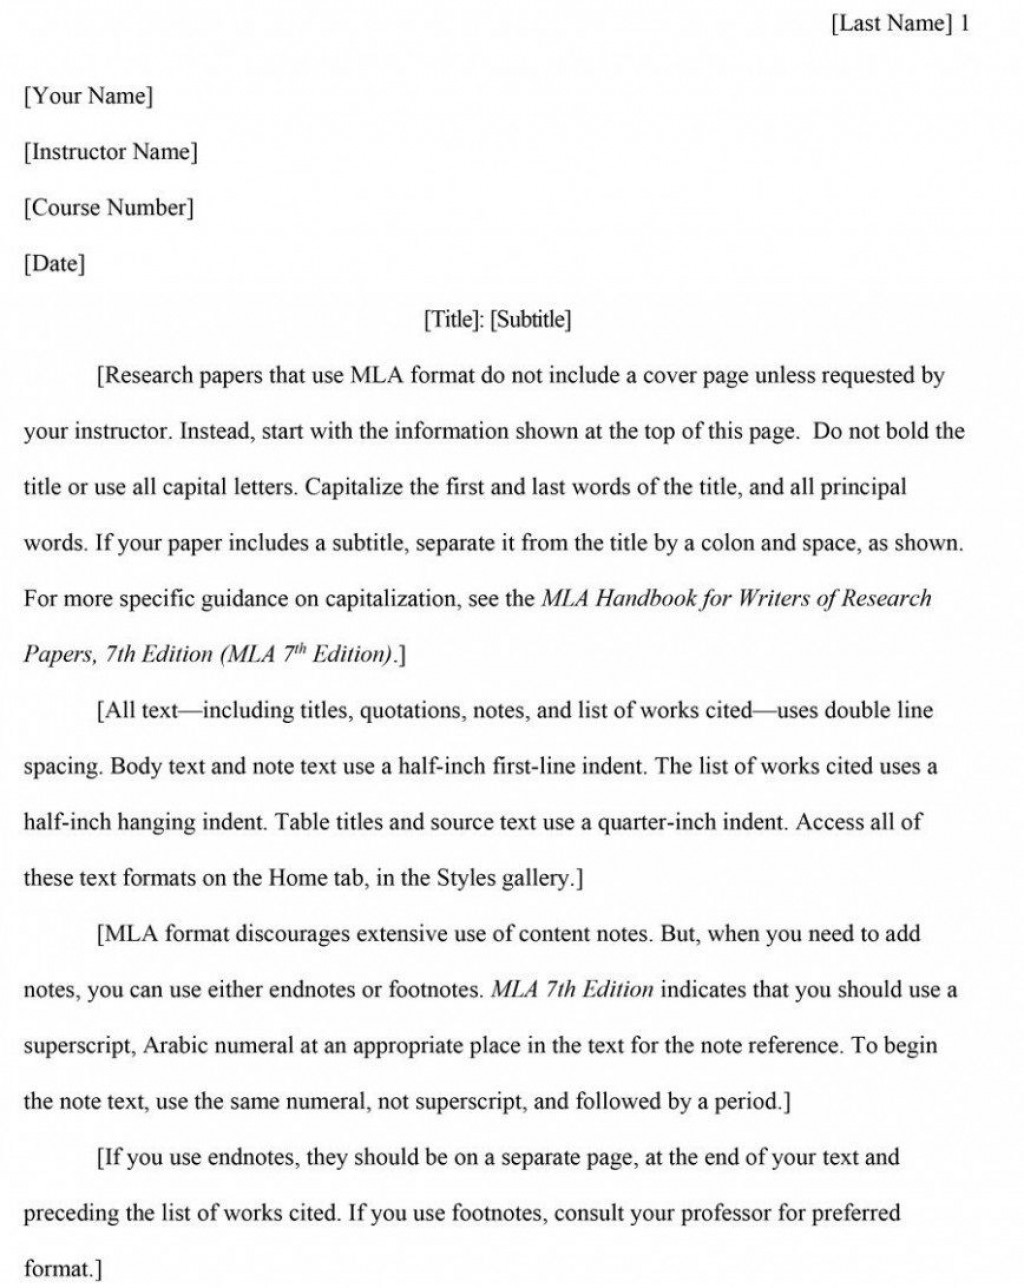 004 Awful Research Topic Proposal Template High Resolution  Format Paper ExampleLarge